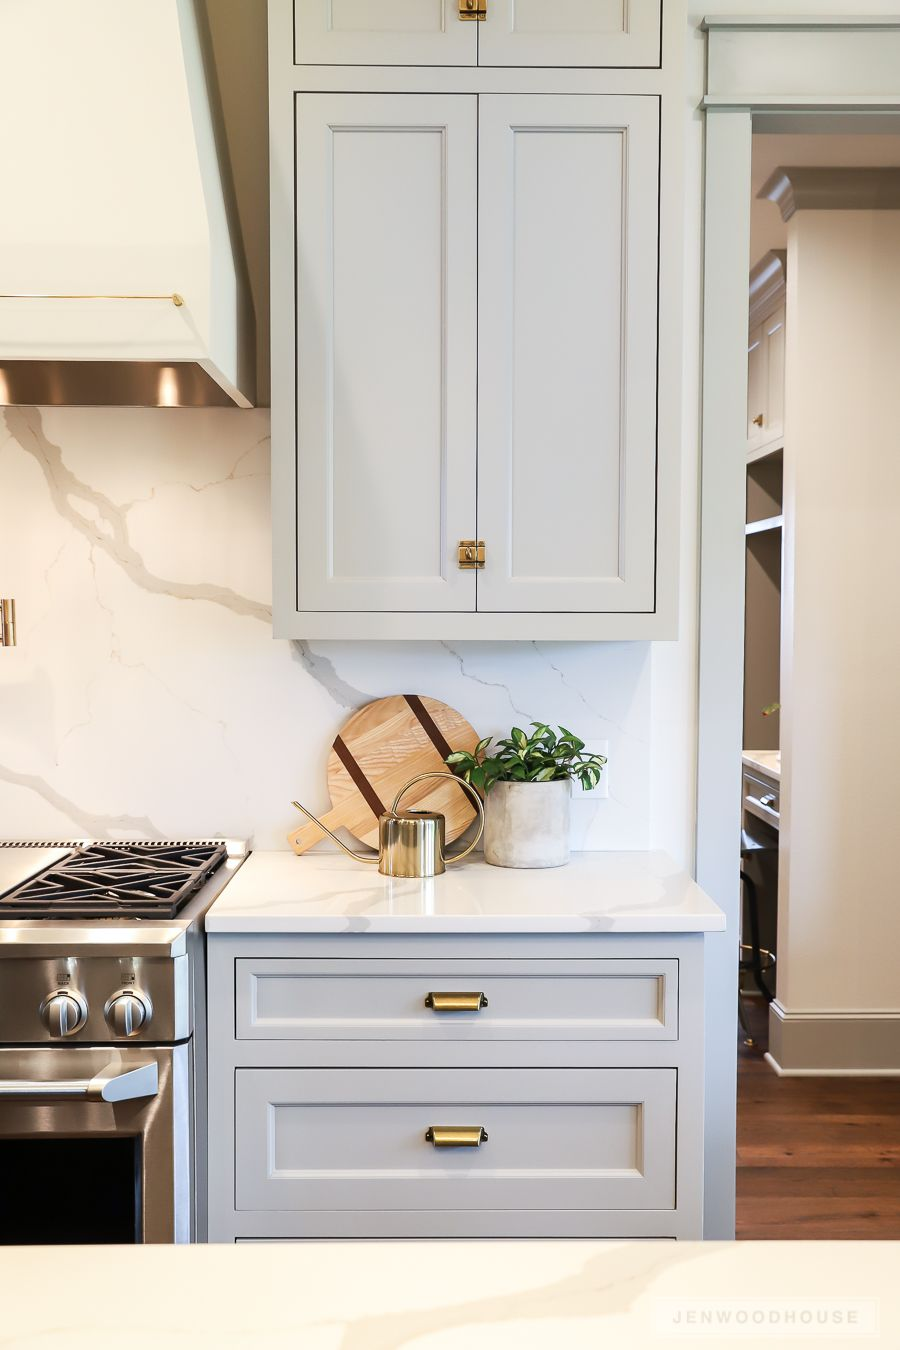 Trim Color Matching Cabinets Interior Design Kitchen Parade Of Homes Home Remodeling